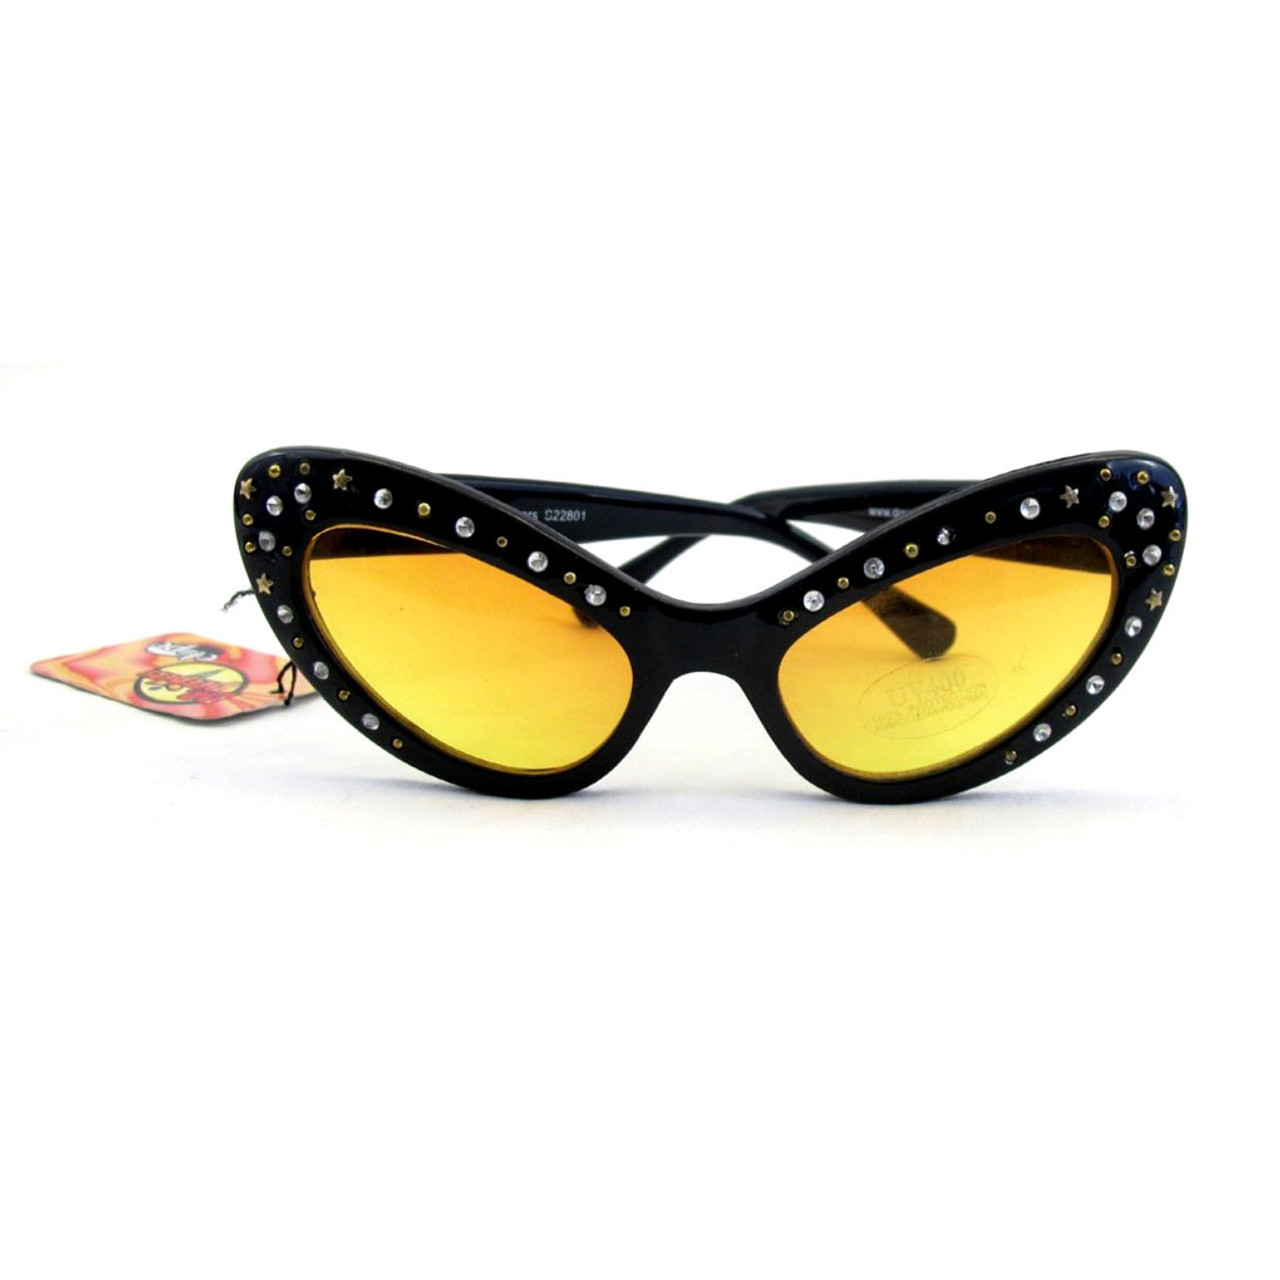 1871d008dbb Cat Eye Black Costume Party Eye Glasses Rhinestone Edge - Purple Leopard  Boutique